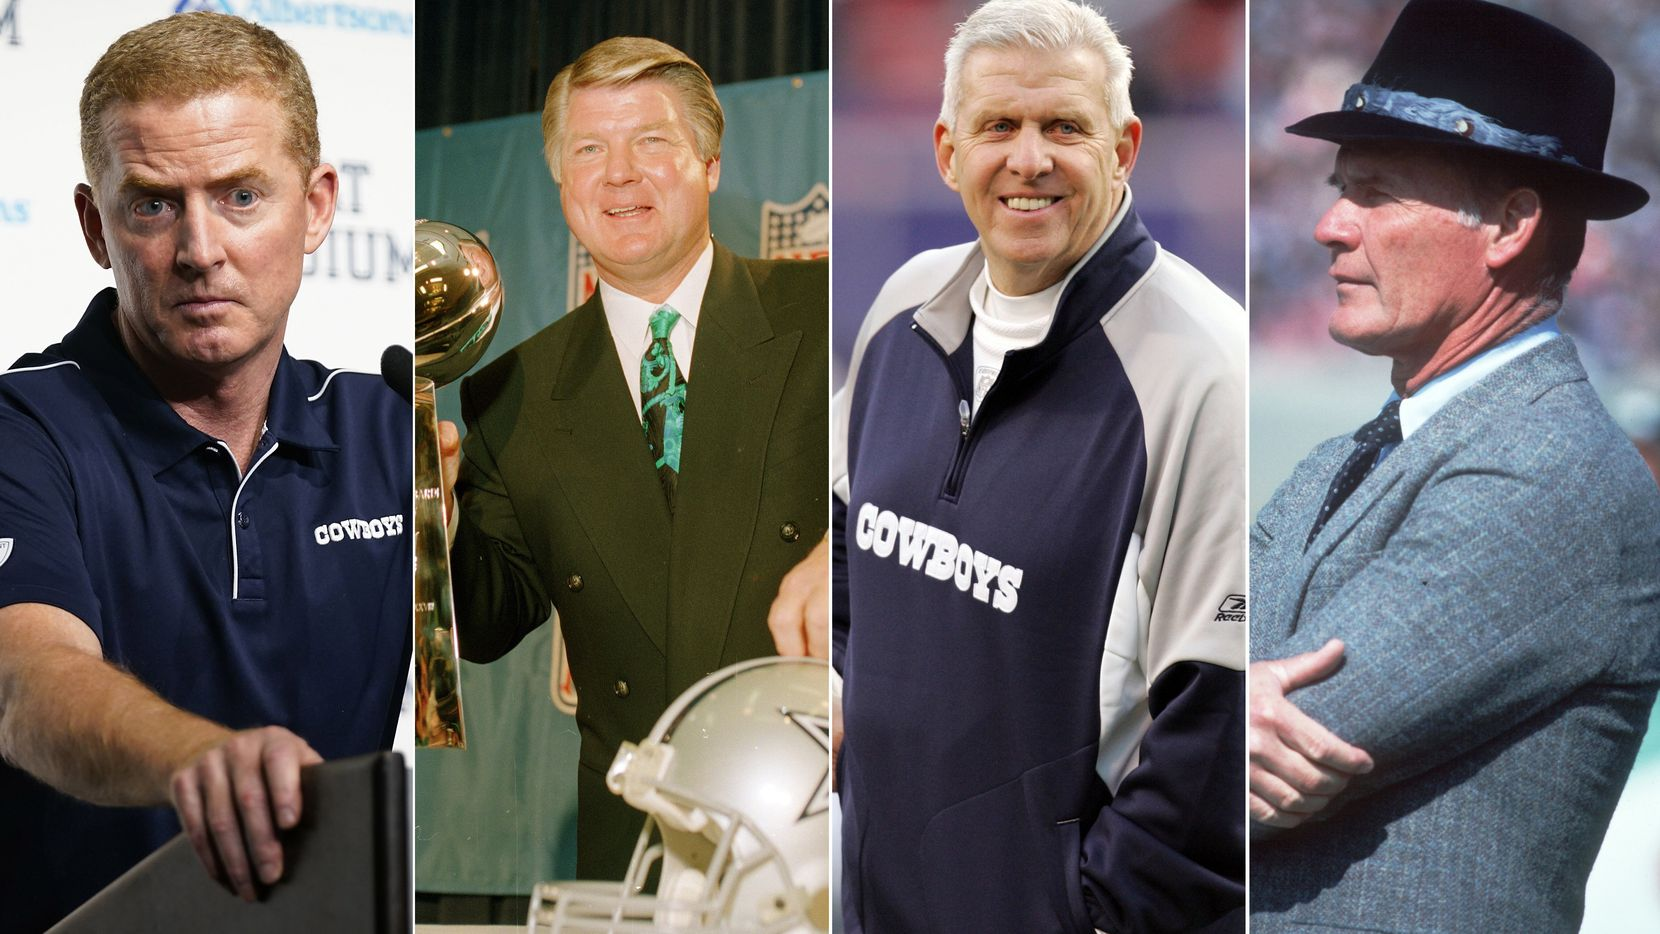 File photos (from left to right): Jason Garrett, Jimmy Johnson, Bill Parcells, Tom Landry